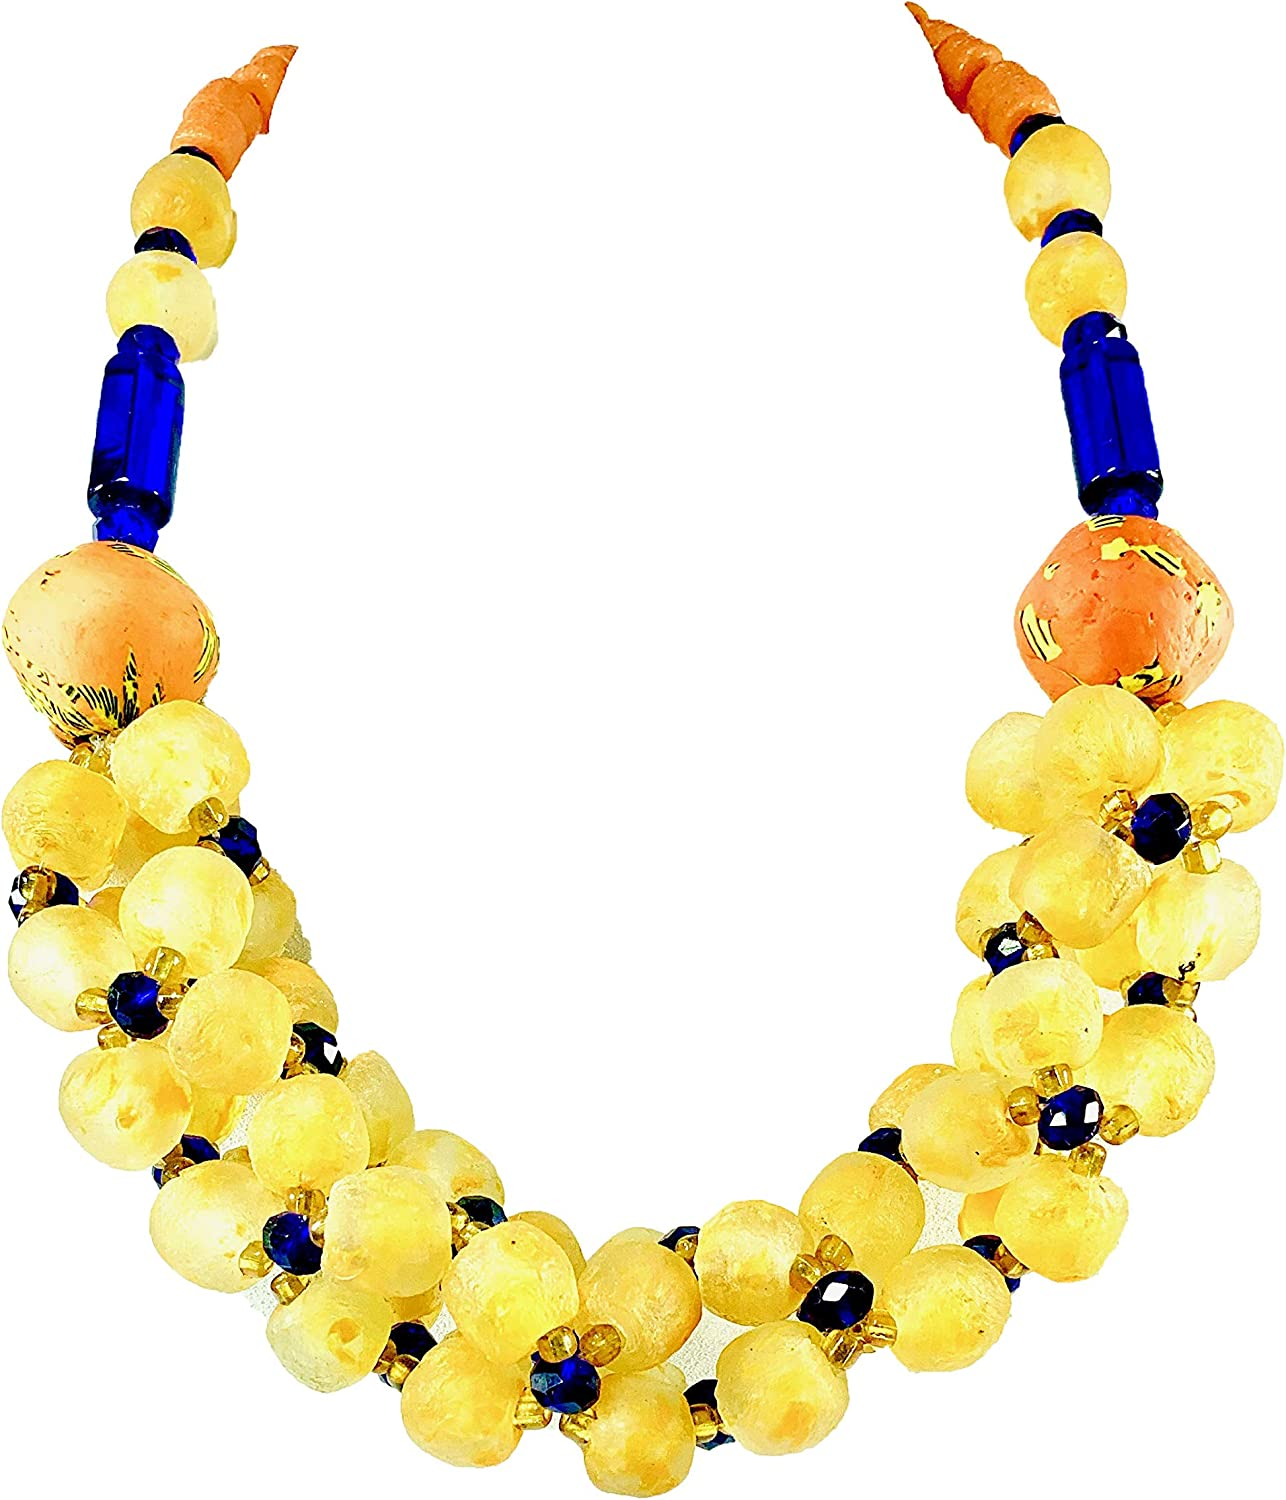 Sophia Dor Oracle Glass Bead Necklace with Bracelet and Earring Set